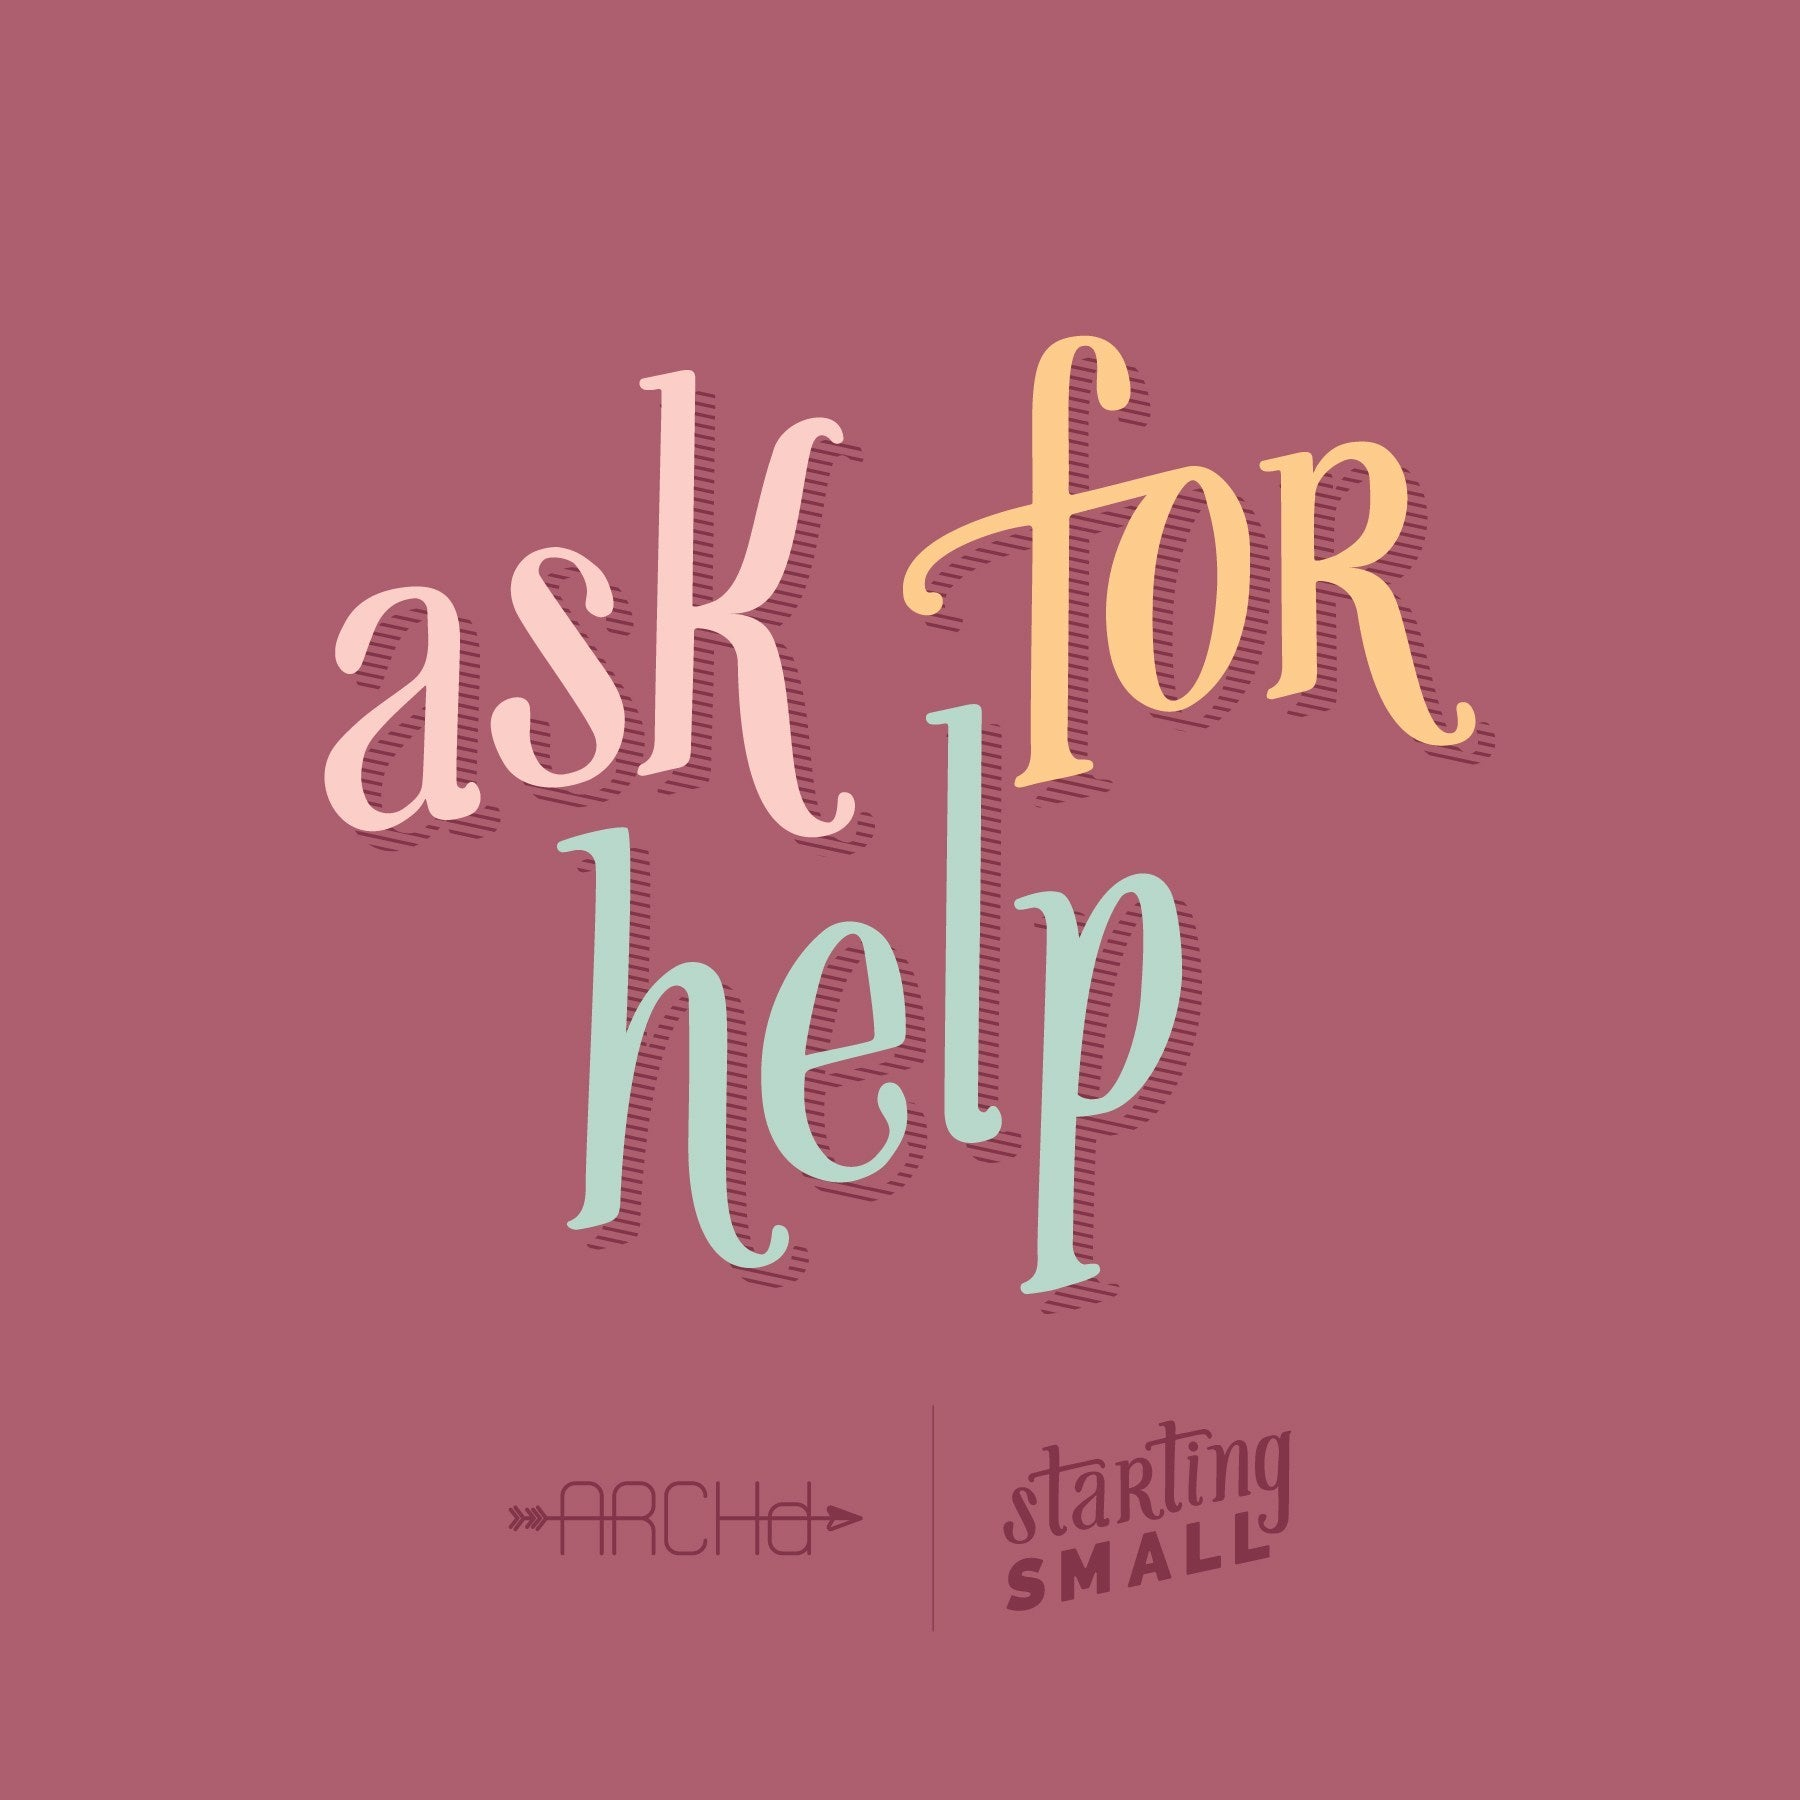 Ask For Help Starting Small a blog series by ARCHd about the adventures of starting a small business